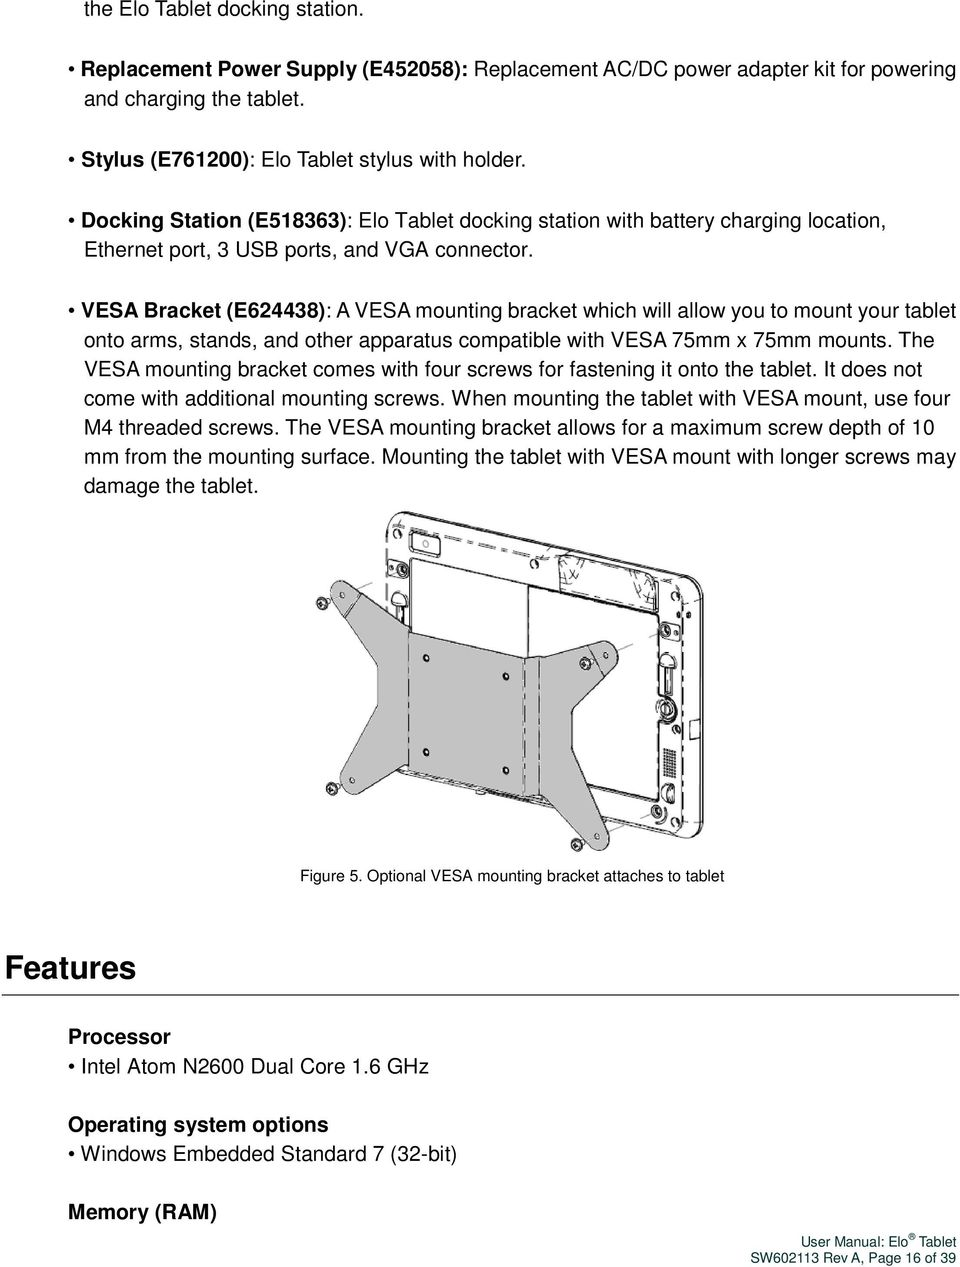 VESA Bracket (E624438): A VESA mounting bracket which will allow you to mount your tablet onto arms, stands, and other apparatus compatible with VESA 75mm x 75mm mounts.